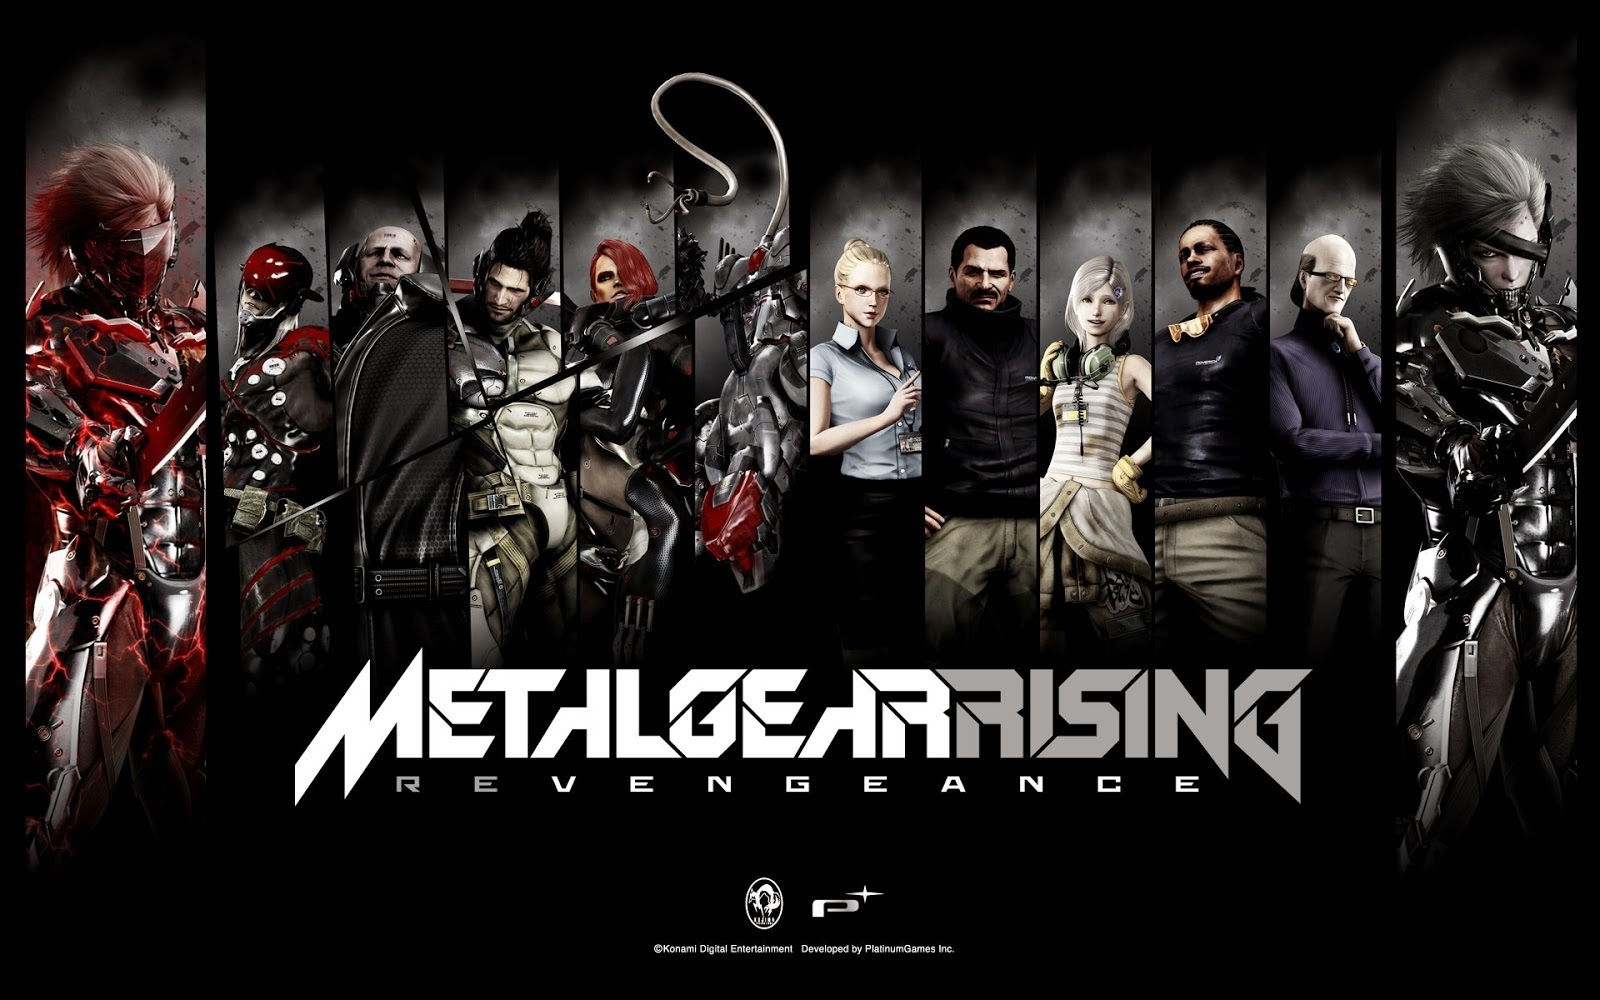 Metal Gear Rising Revengeance - Download Game PC Iso New Free